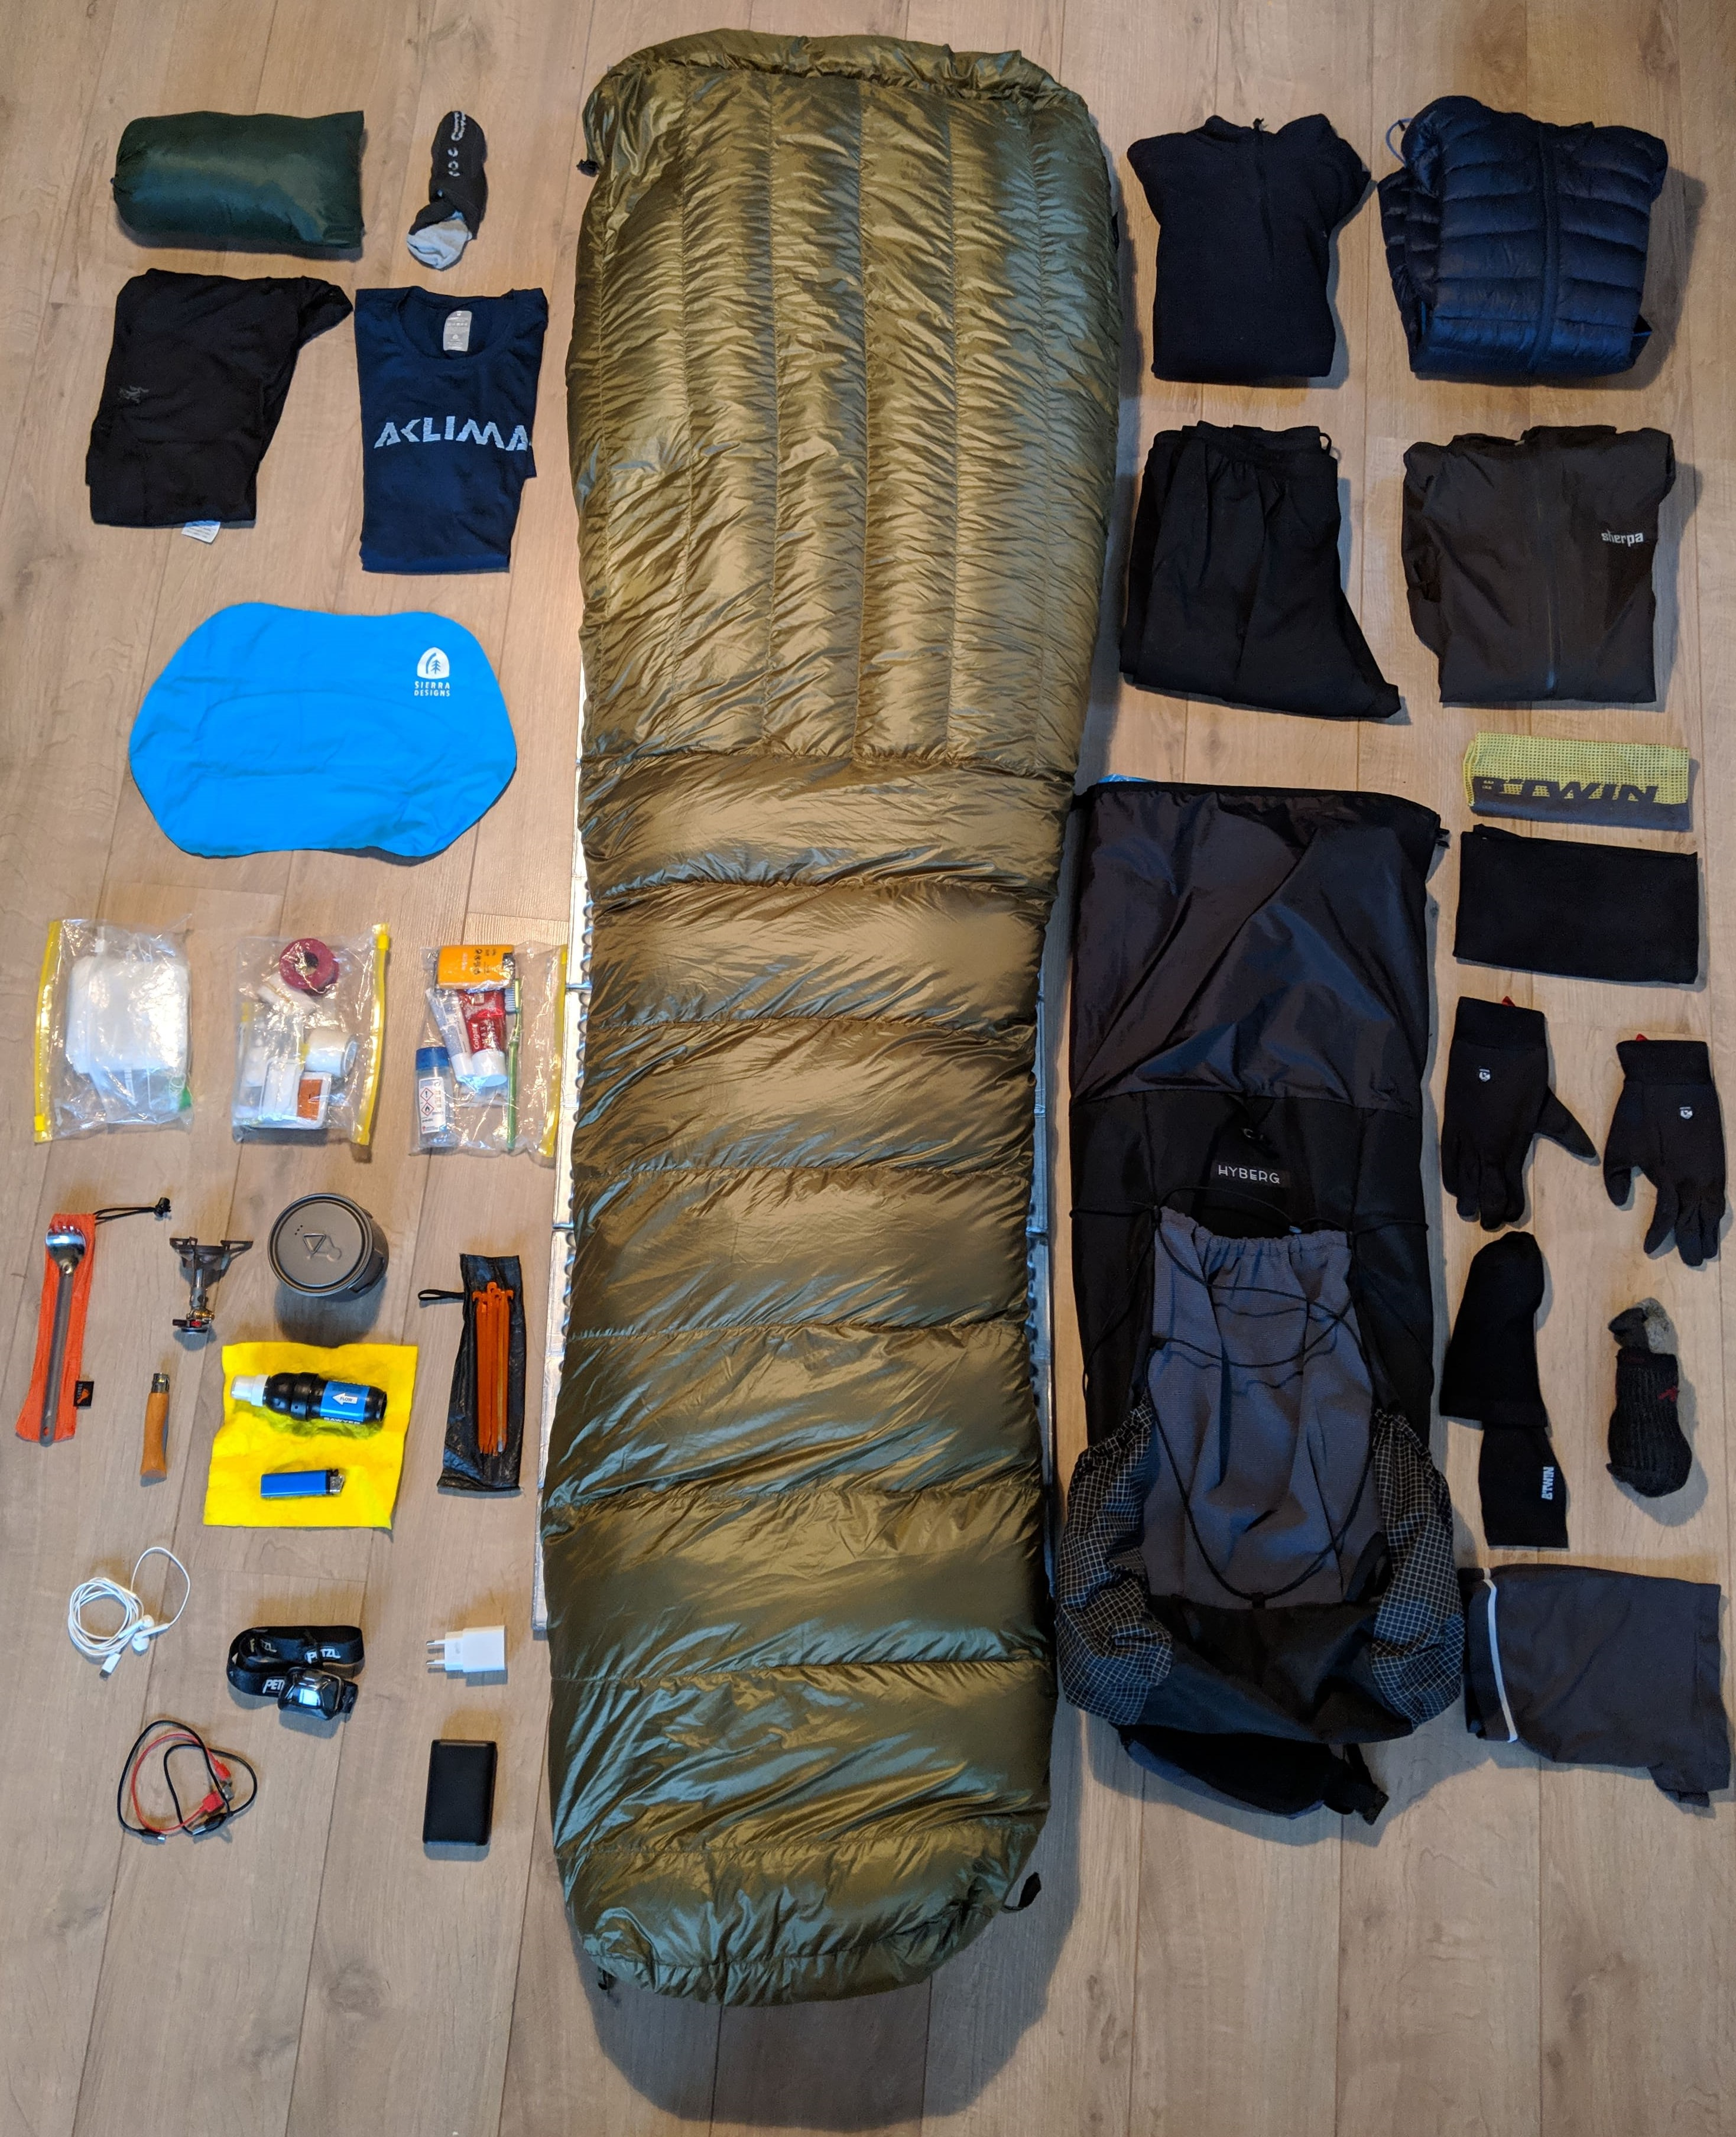 An overview of all lightweight hiking gear that I am taking on the Pacific Crest Trail